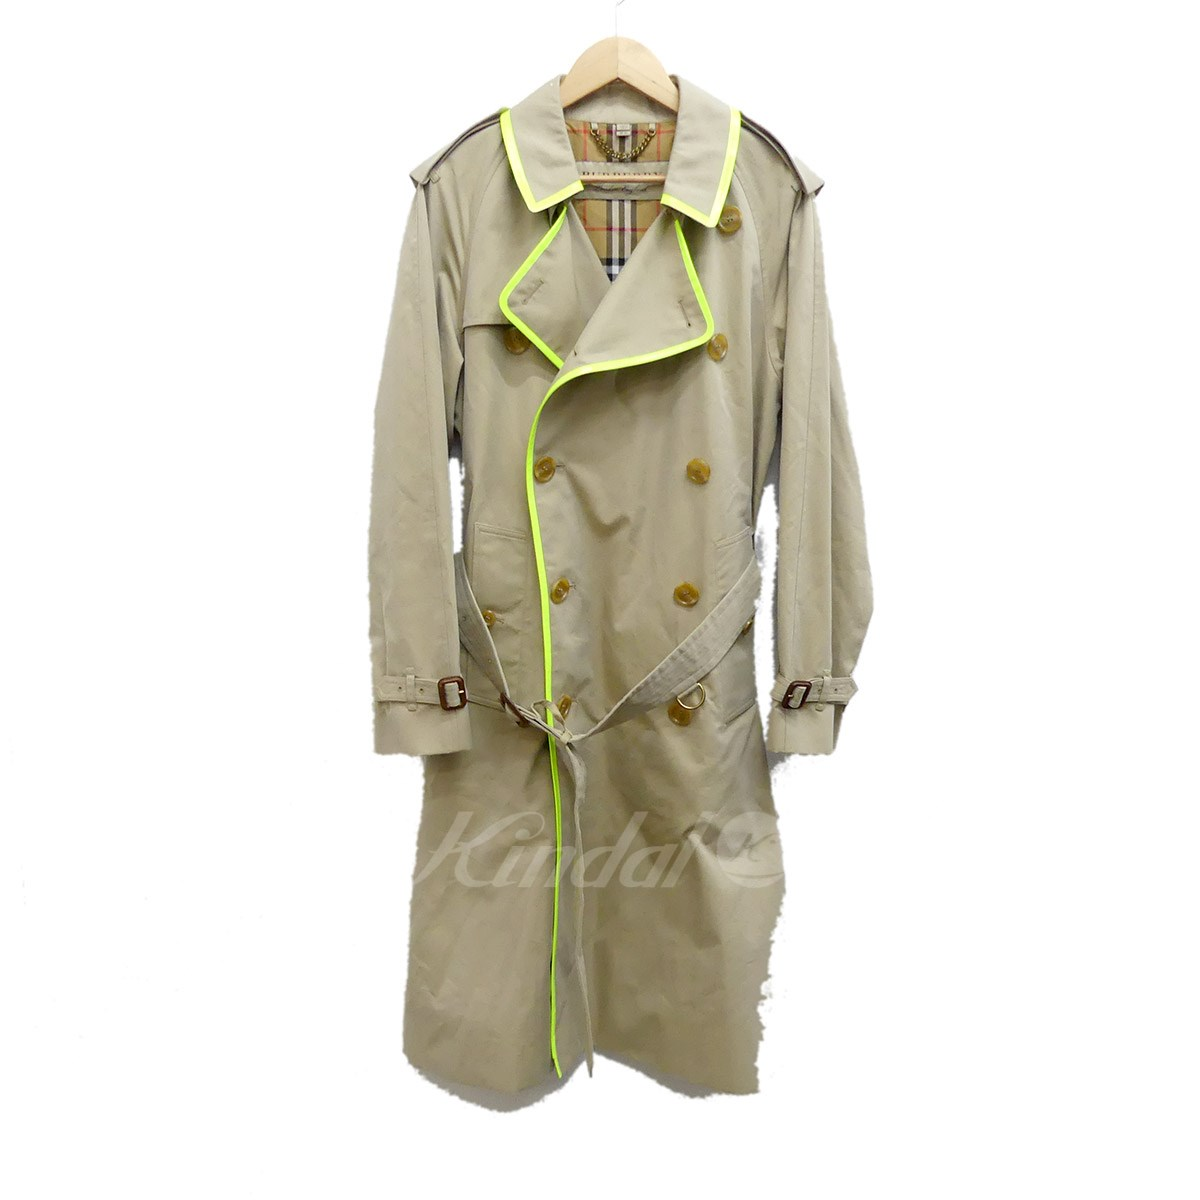 【中古】BURBERRY 2018SS tape detail gabardine トレンチコート 【送料無料】 【159477】 【KIND1550】